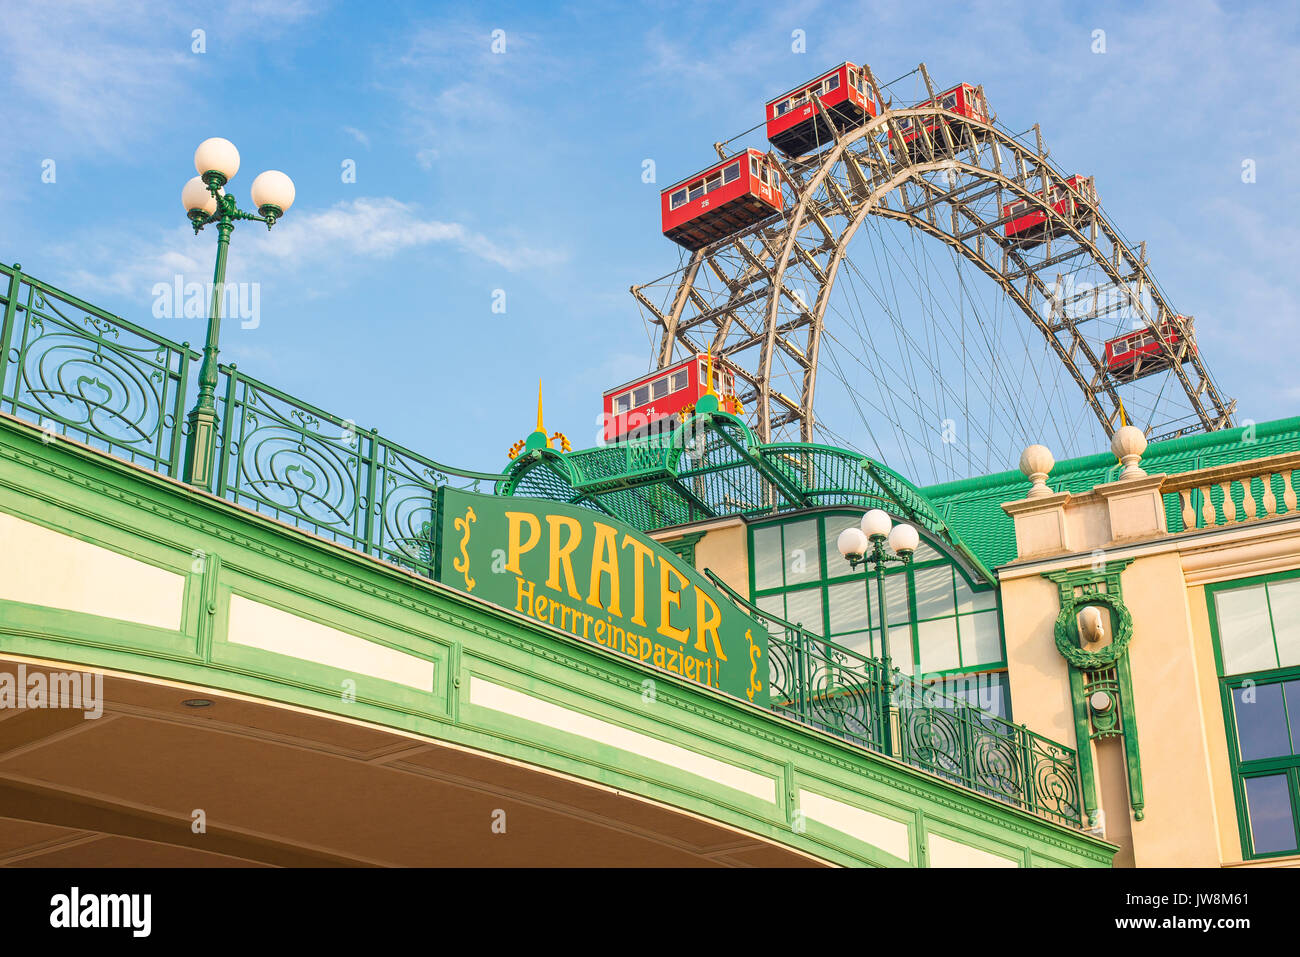 Vienna Prater park, the entrance to the Prater amusement park in Vienna with the famous Riesenrad ferris wheel in the background, Austria. - Stock Image